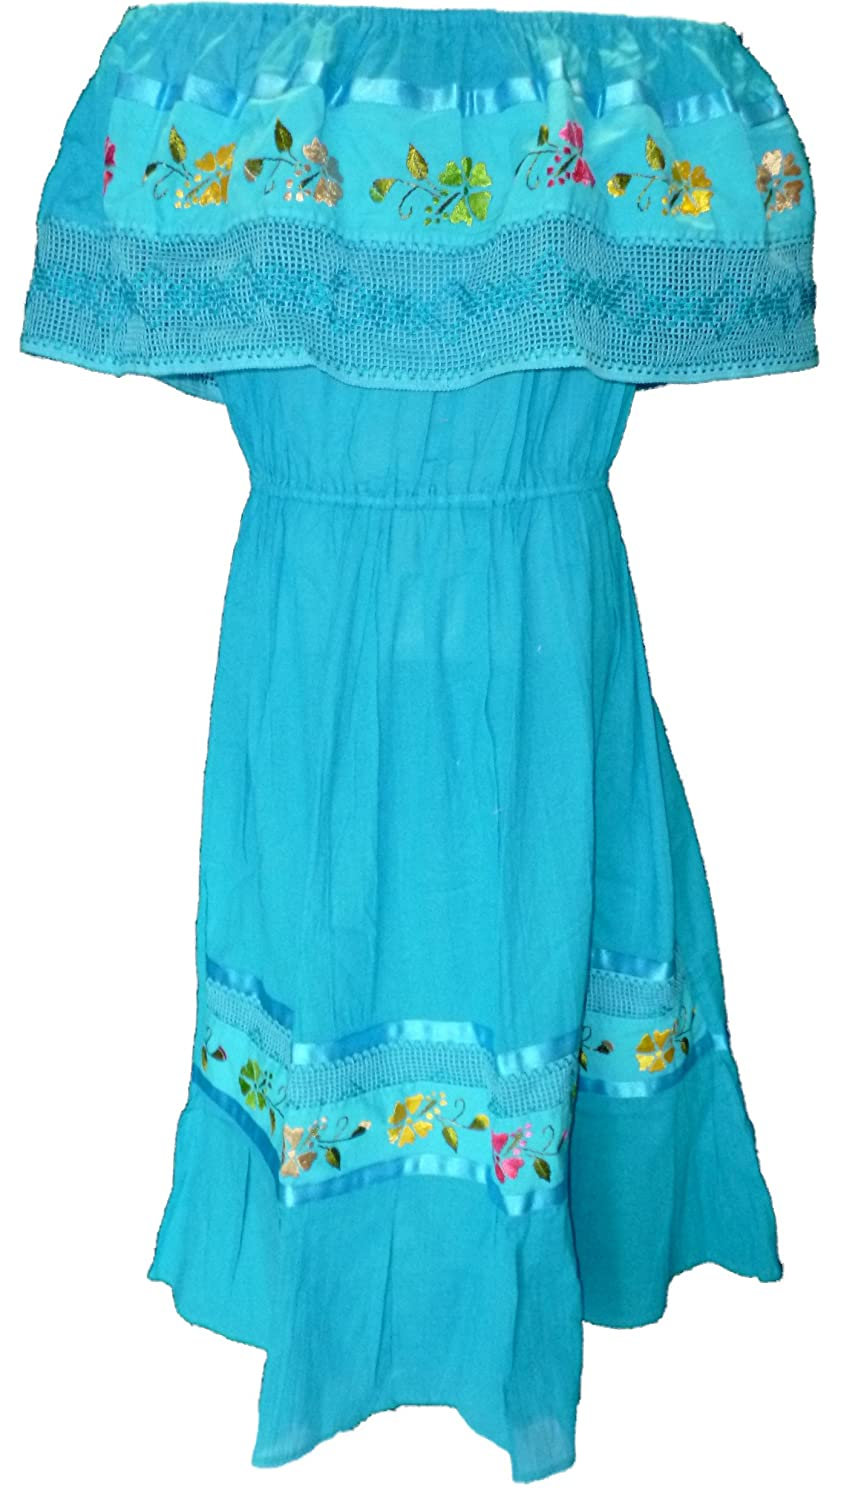 Women's Turquoise Mexican Puebla Crochet Off-Shoulder Dress (Medium - XL) - DeluxeAdultCostumes.com